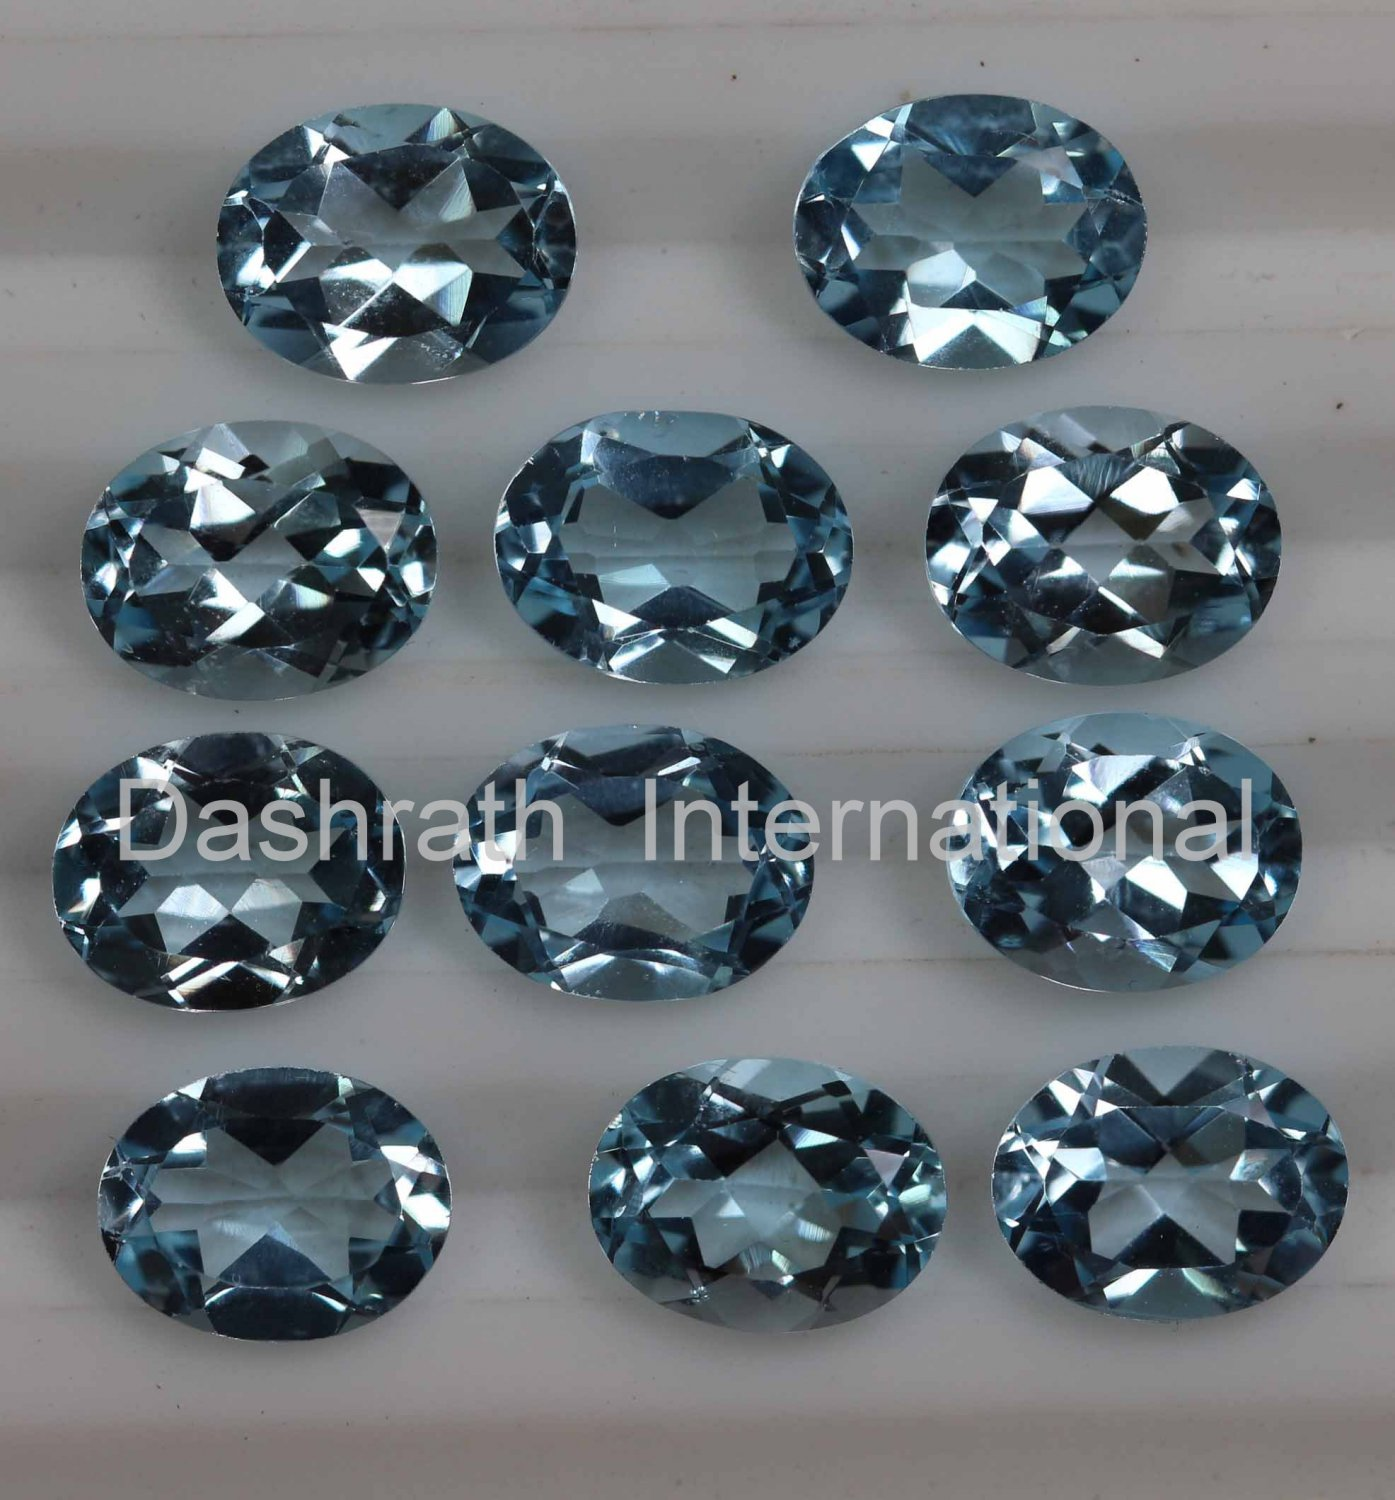 4x6mm  Natural Sky Blue Topaz Faceted Cut Oval  5 Pieces Lot  Top Quality Loose Gemstone